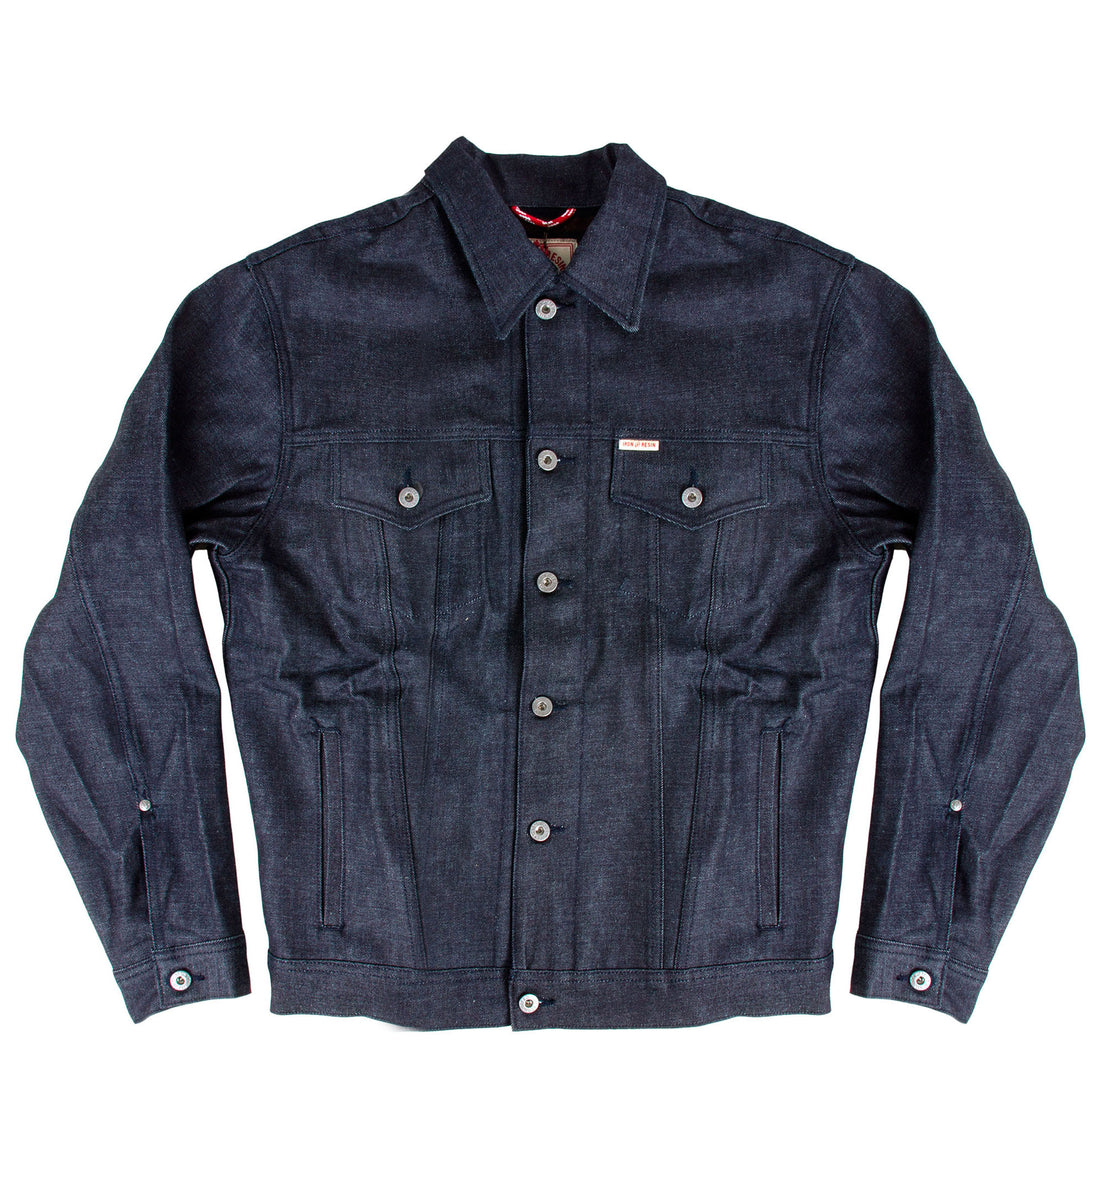 Rambler Jacket Denim - Outerwear - Iron and Resin